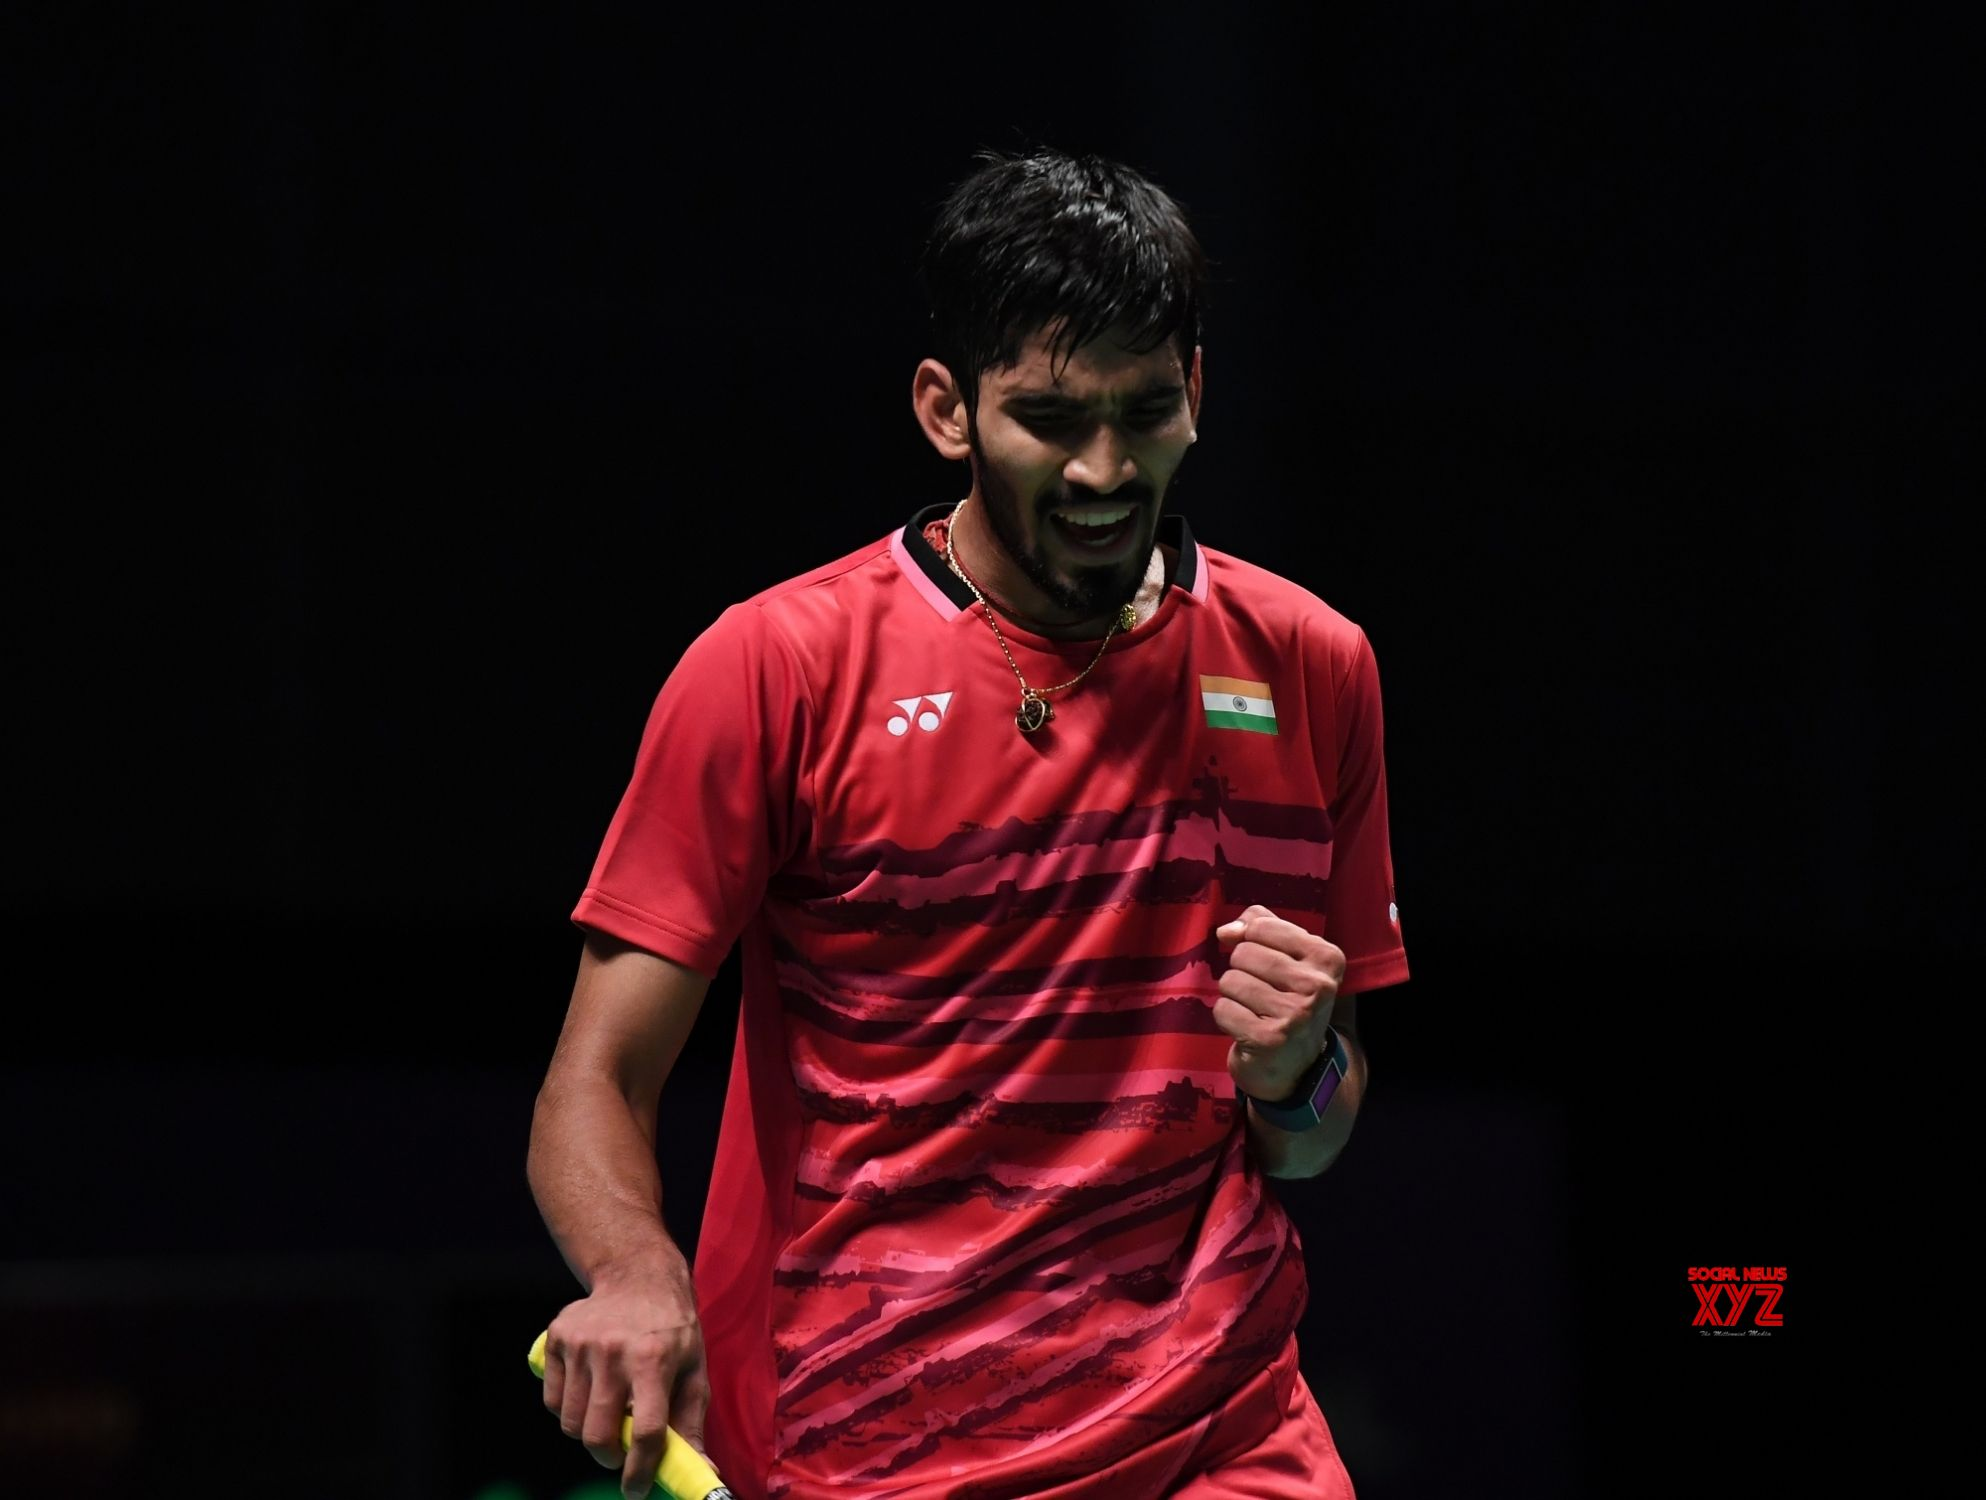 Srikanth in quarters Pranaav Sikki lose in Badminton Worlds